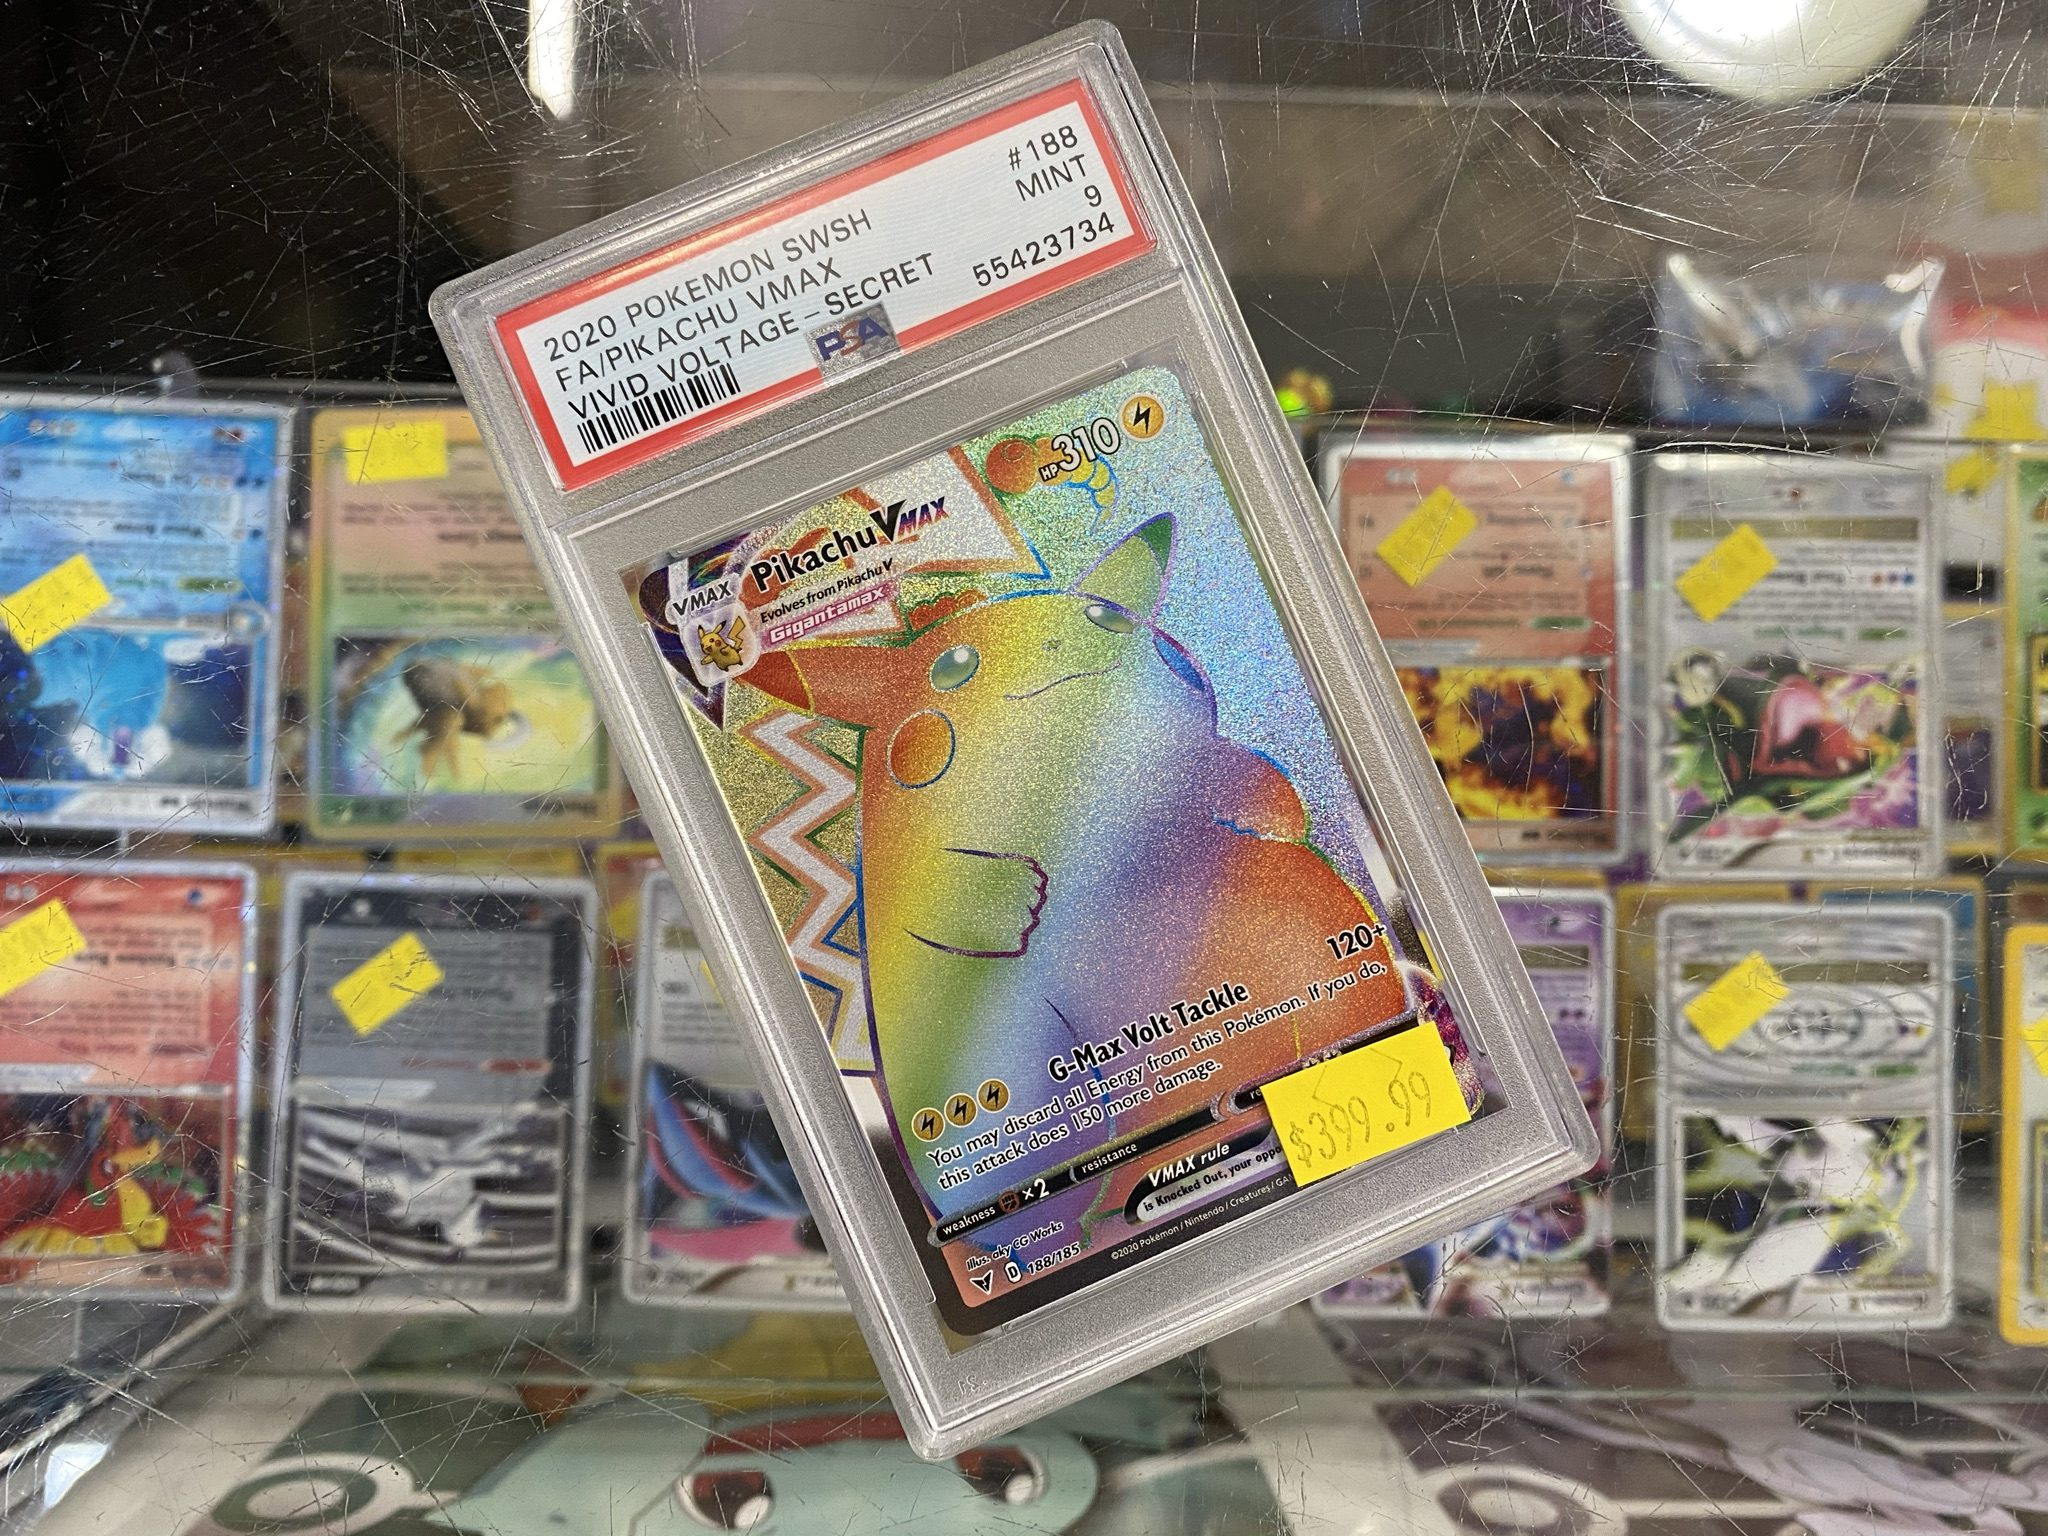 Thousands of Pokemon Singles Available in our in store location – Jay St Videogames in Crossgates Mall